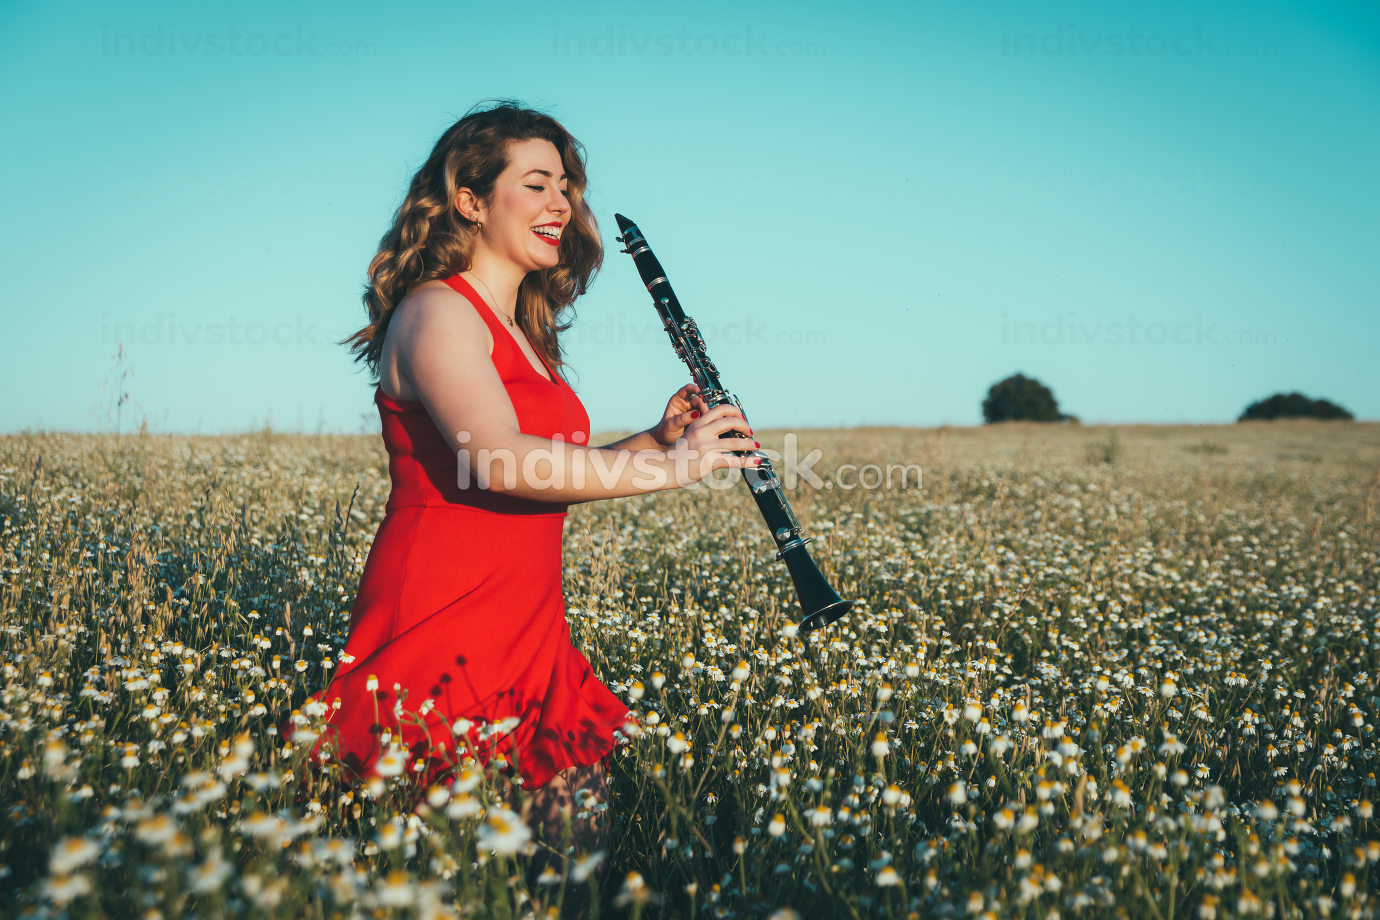 woman in a red dress playing the clarinet in a field of daisies